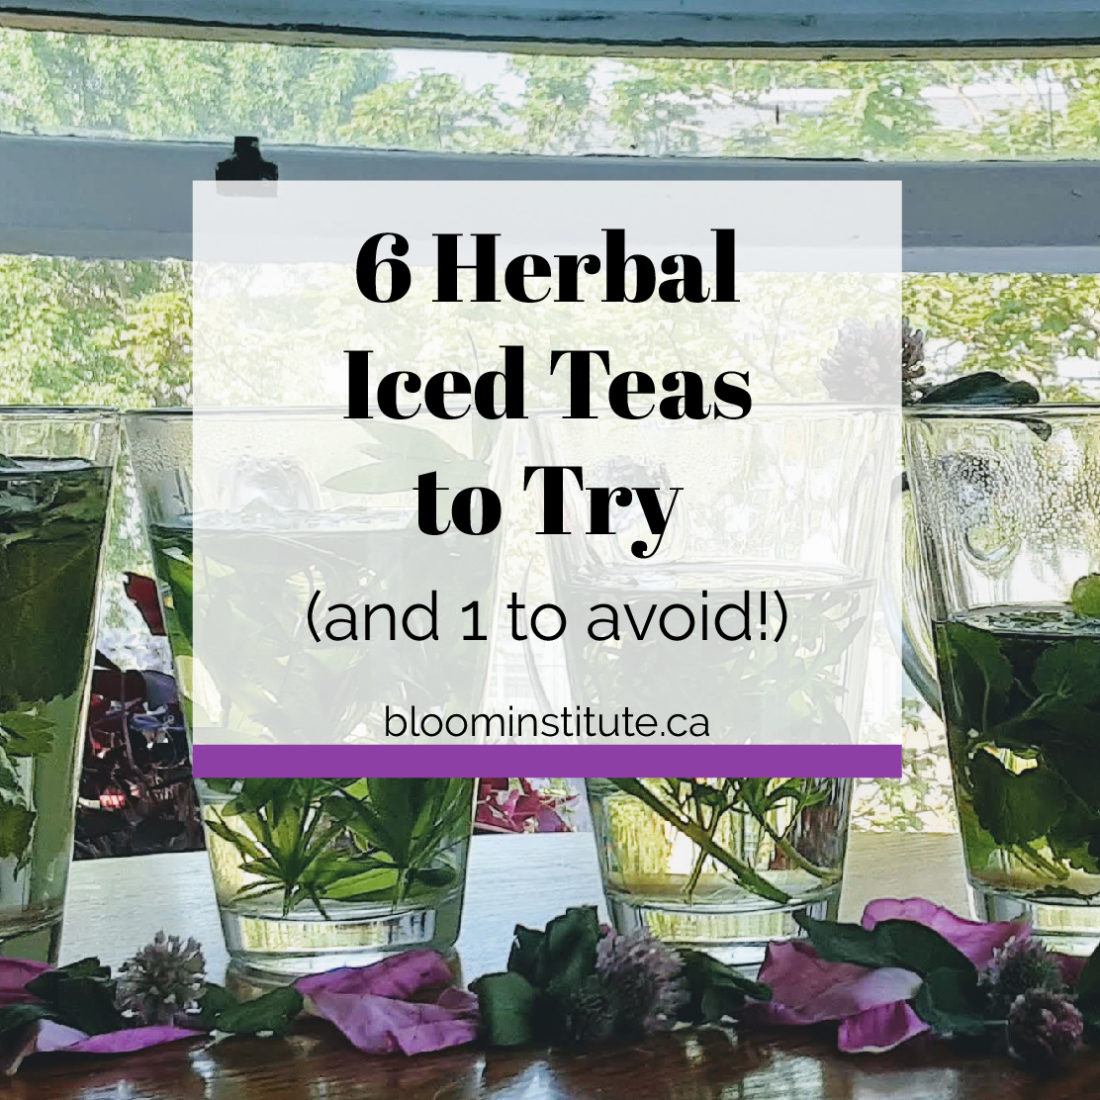 herbal iced teas to try